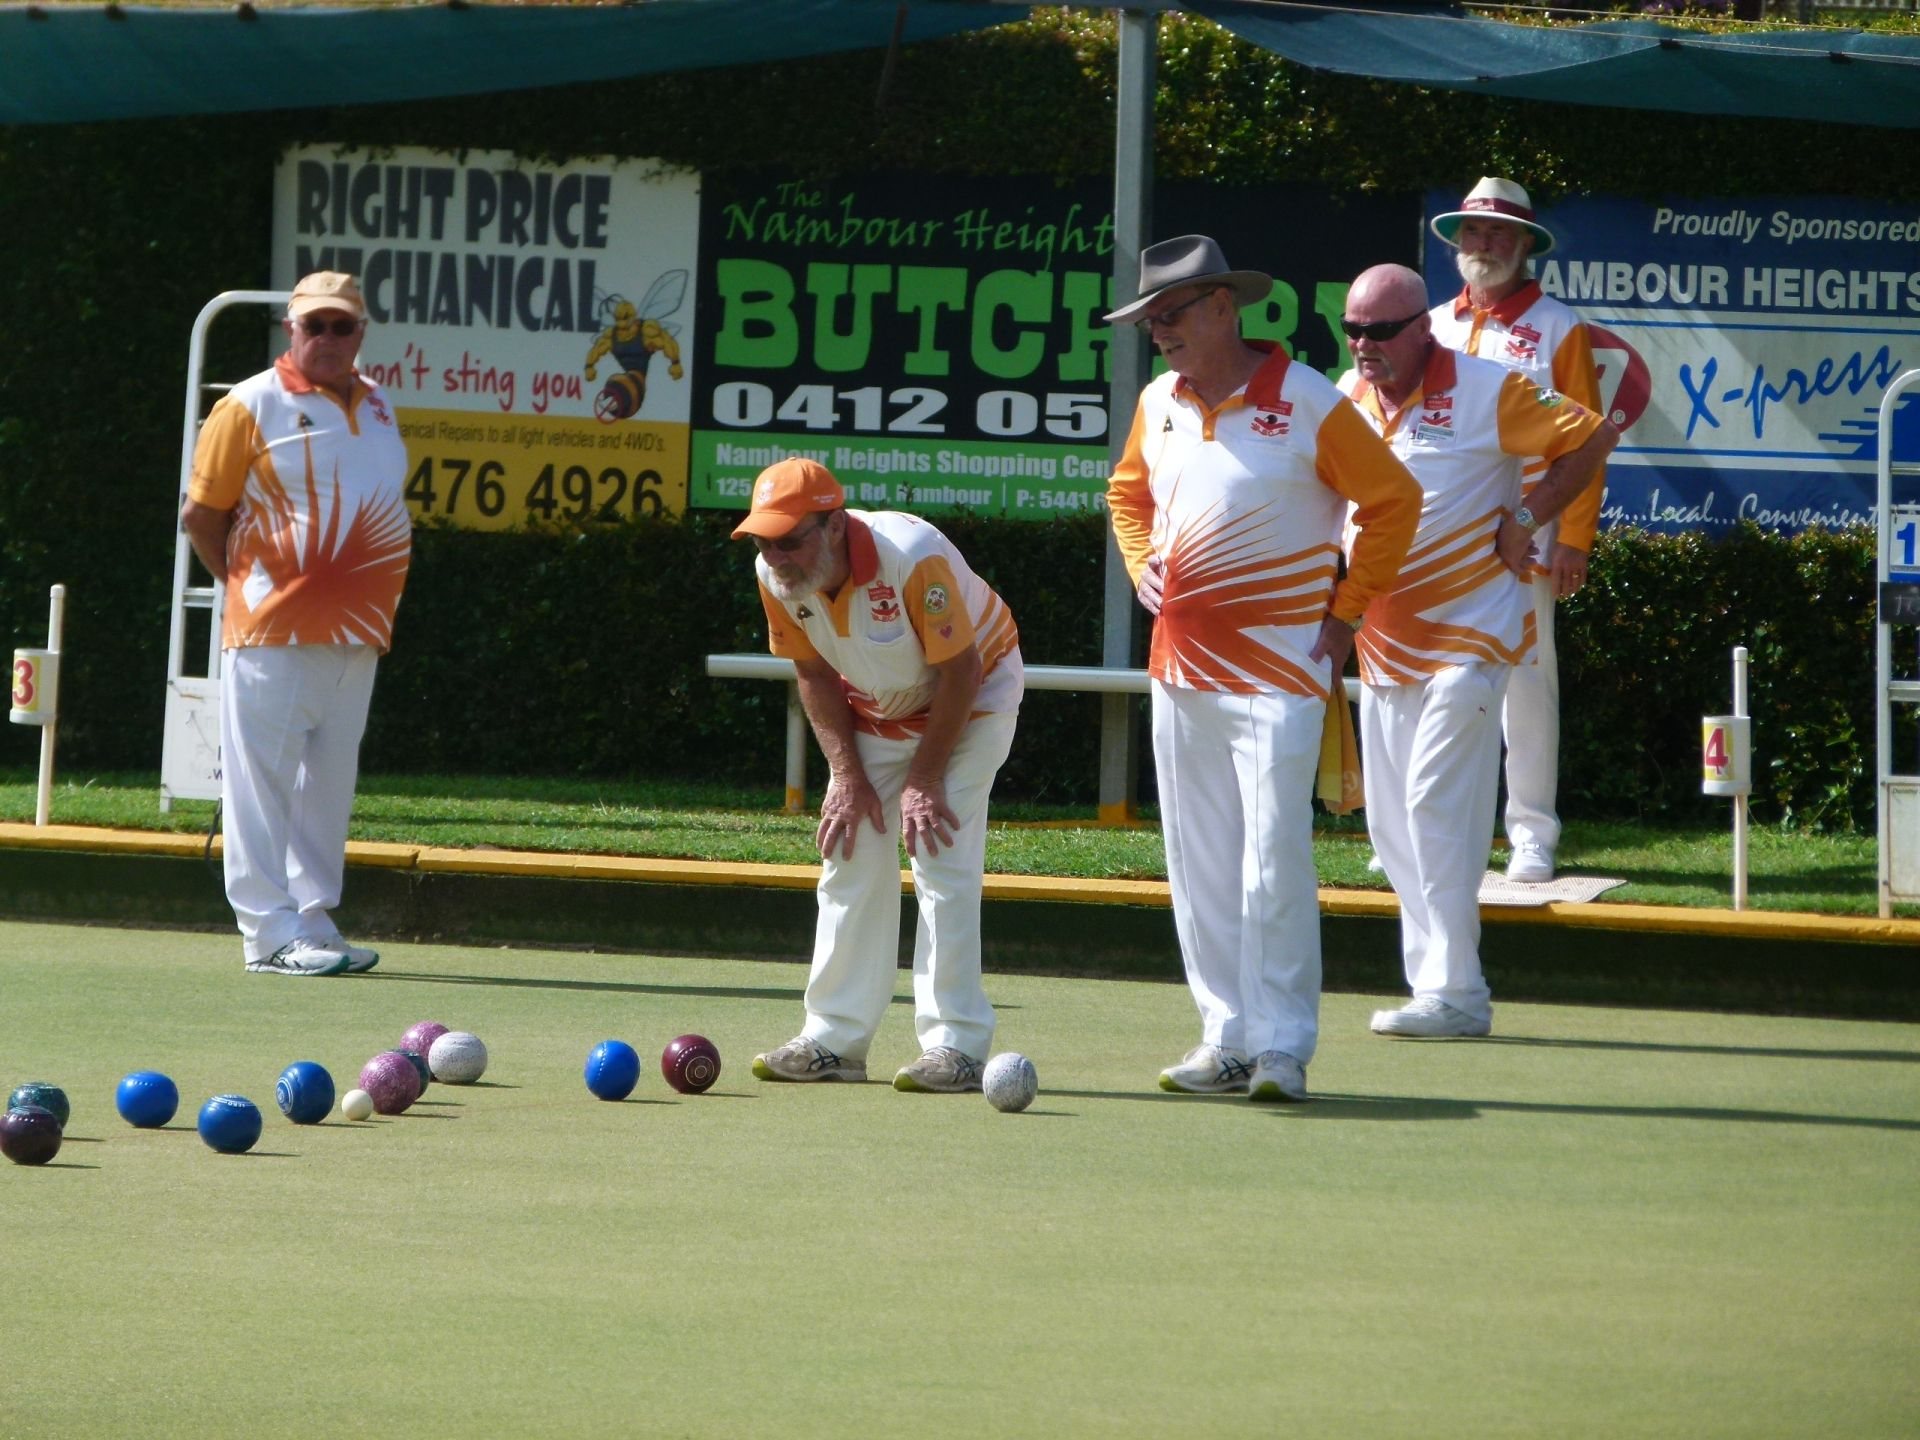 Competition Bowls